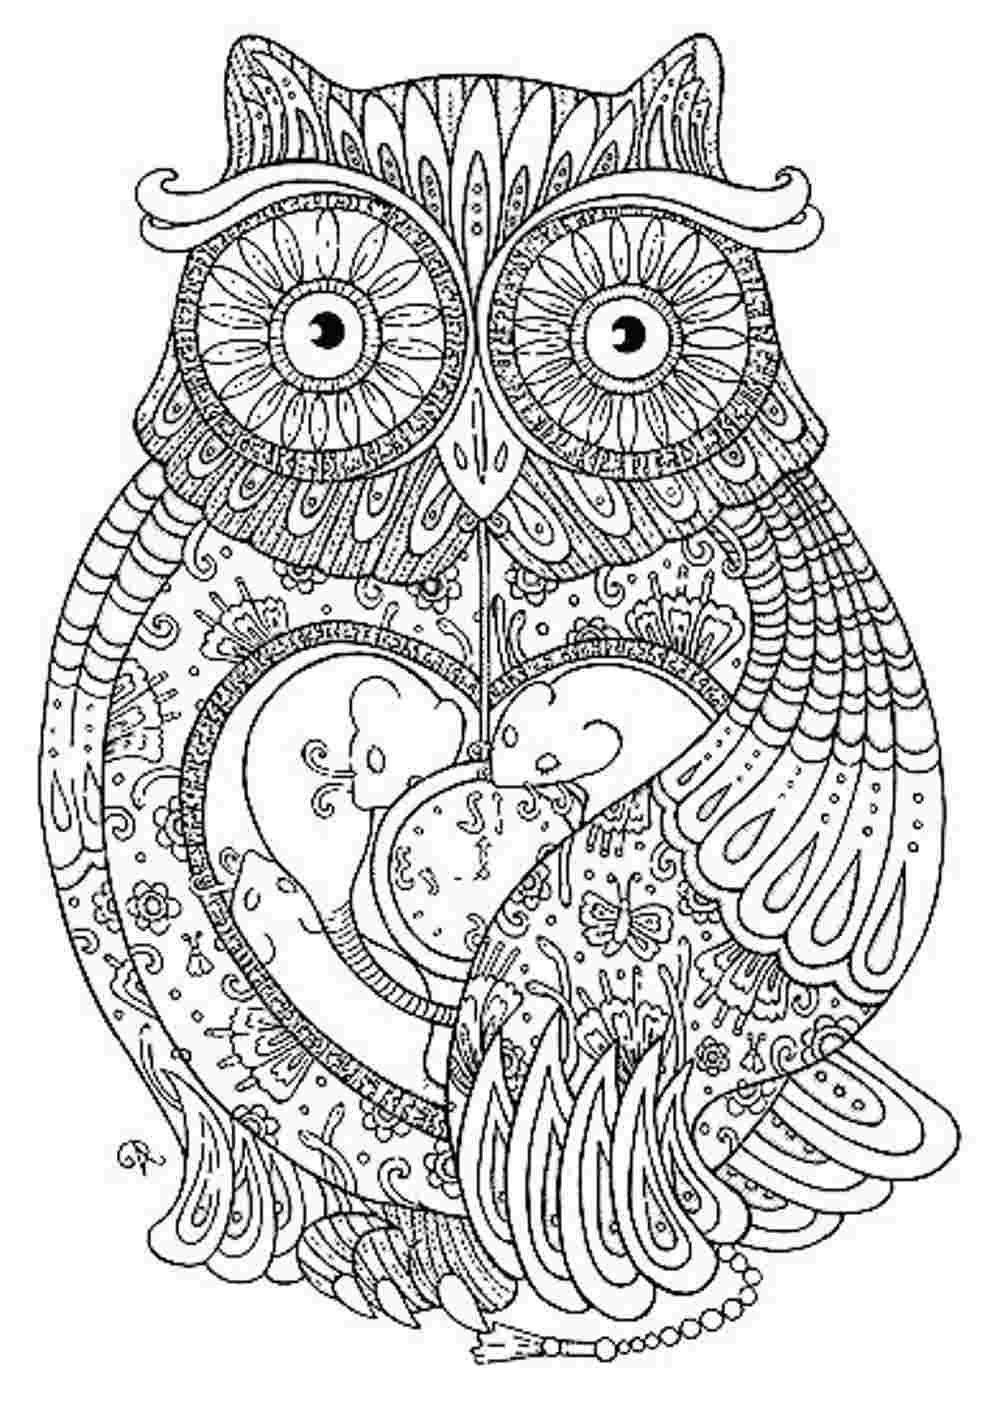 1000x1403 Printable Animal Coloring Pages For Adults